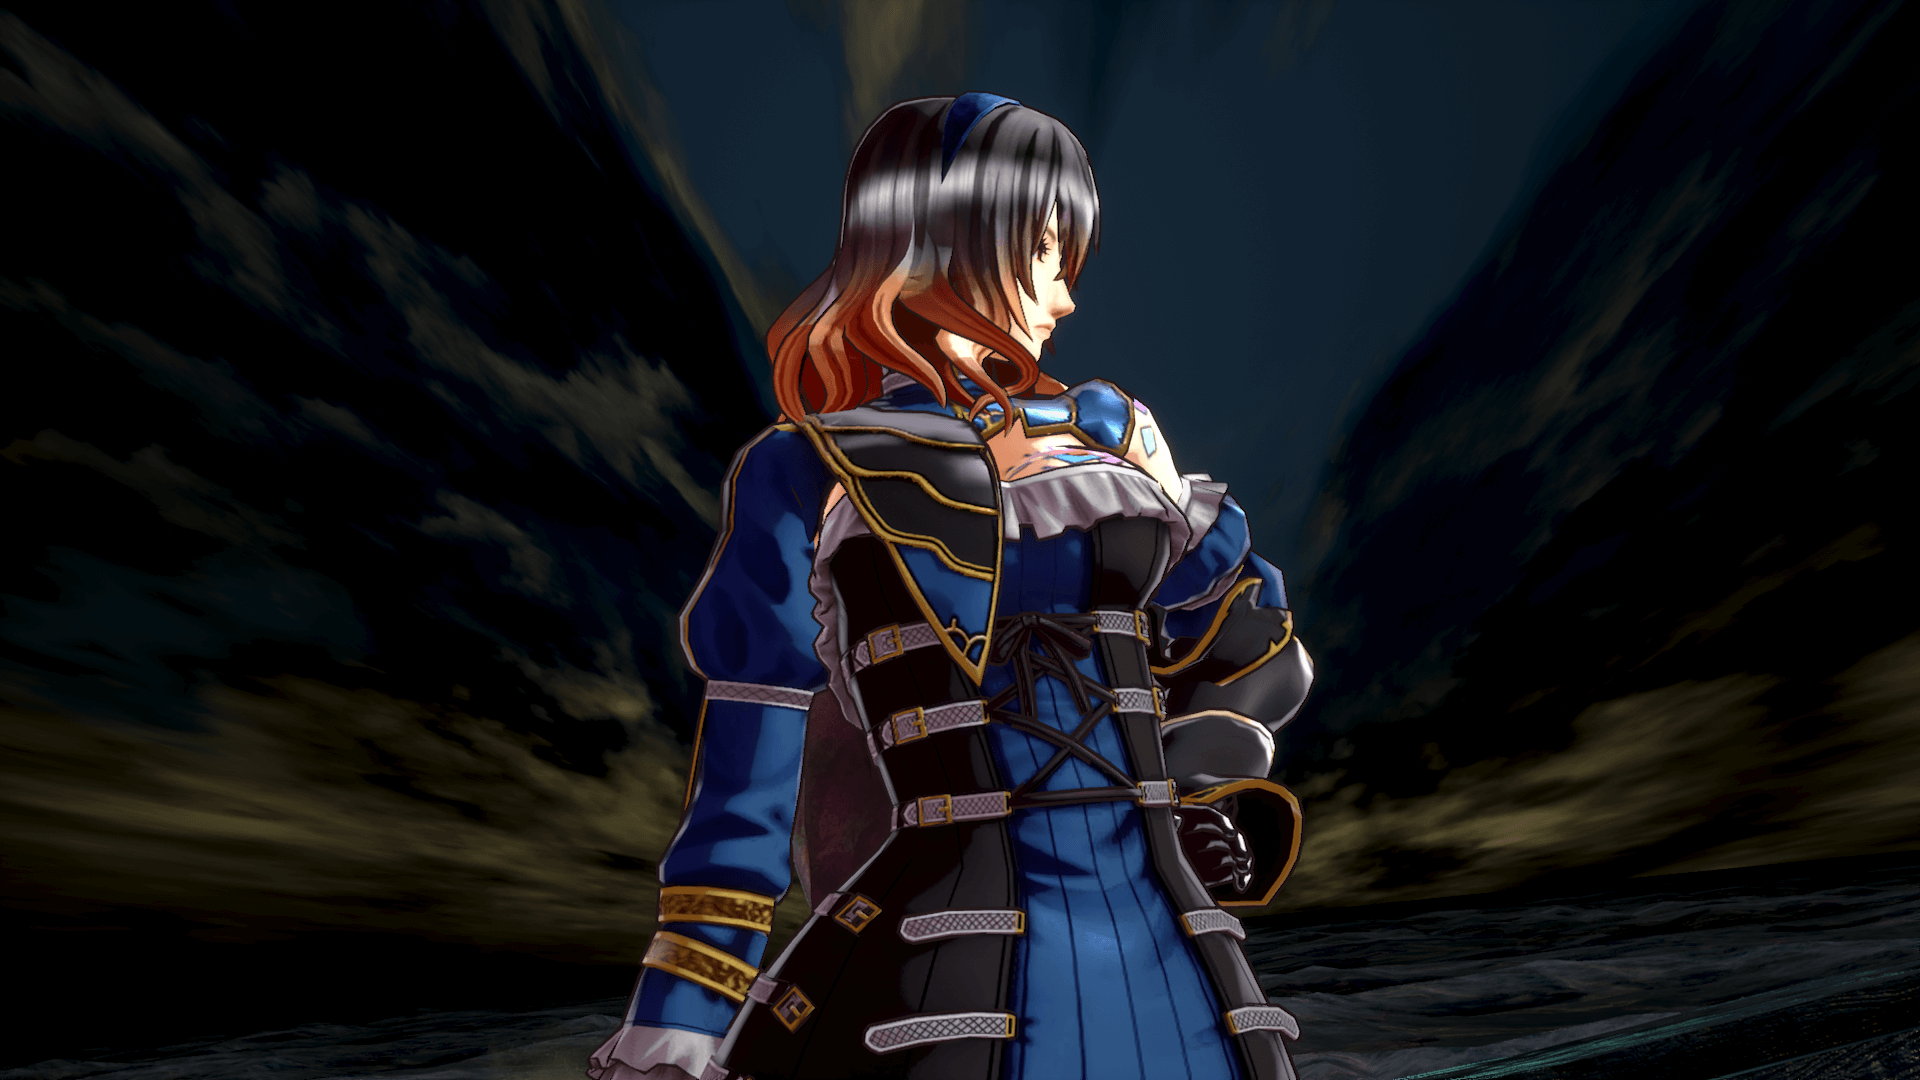 Bloodstained Ritual of the Night Wallpaper 68197 1920x1080px 1920x1080